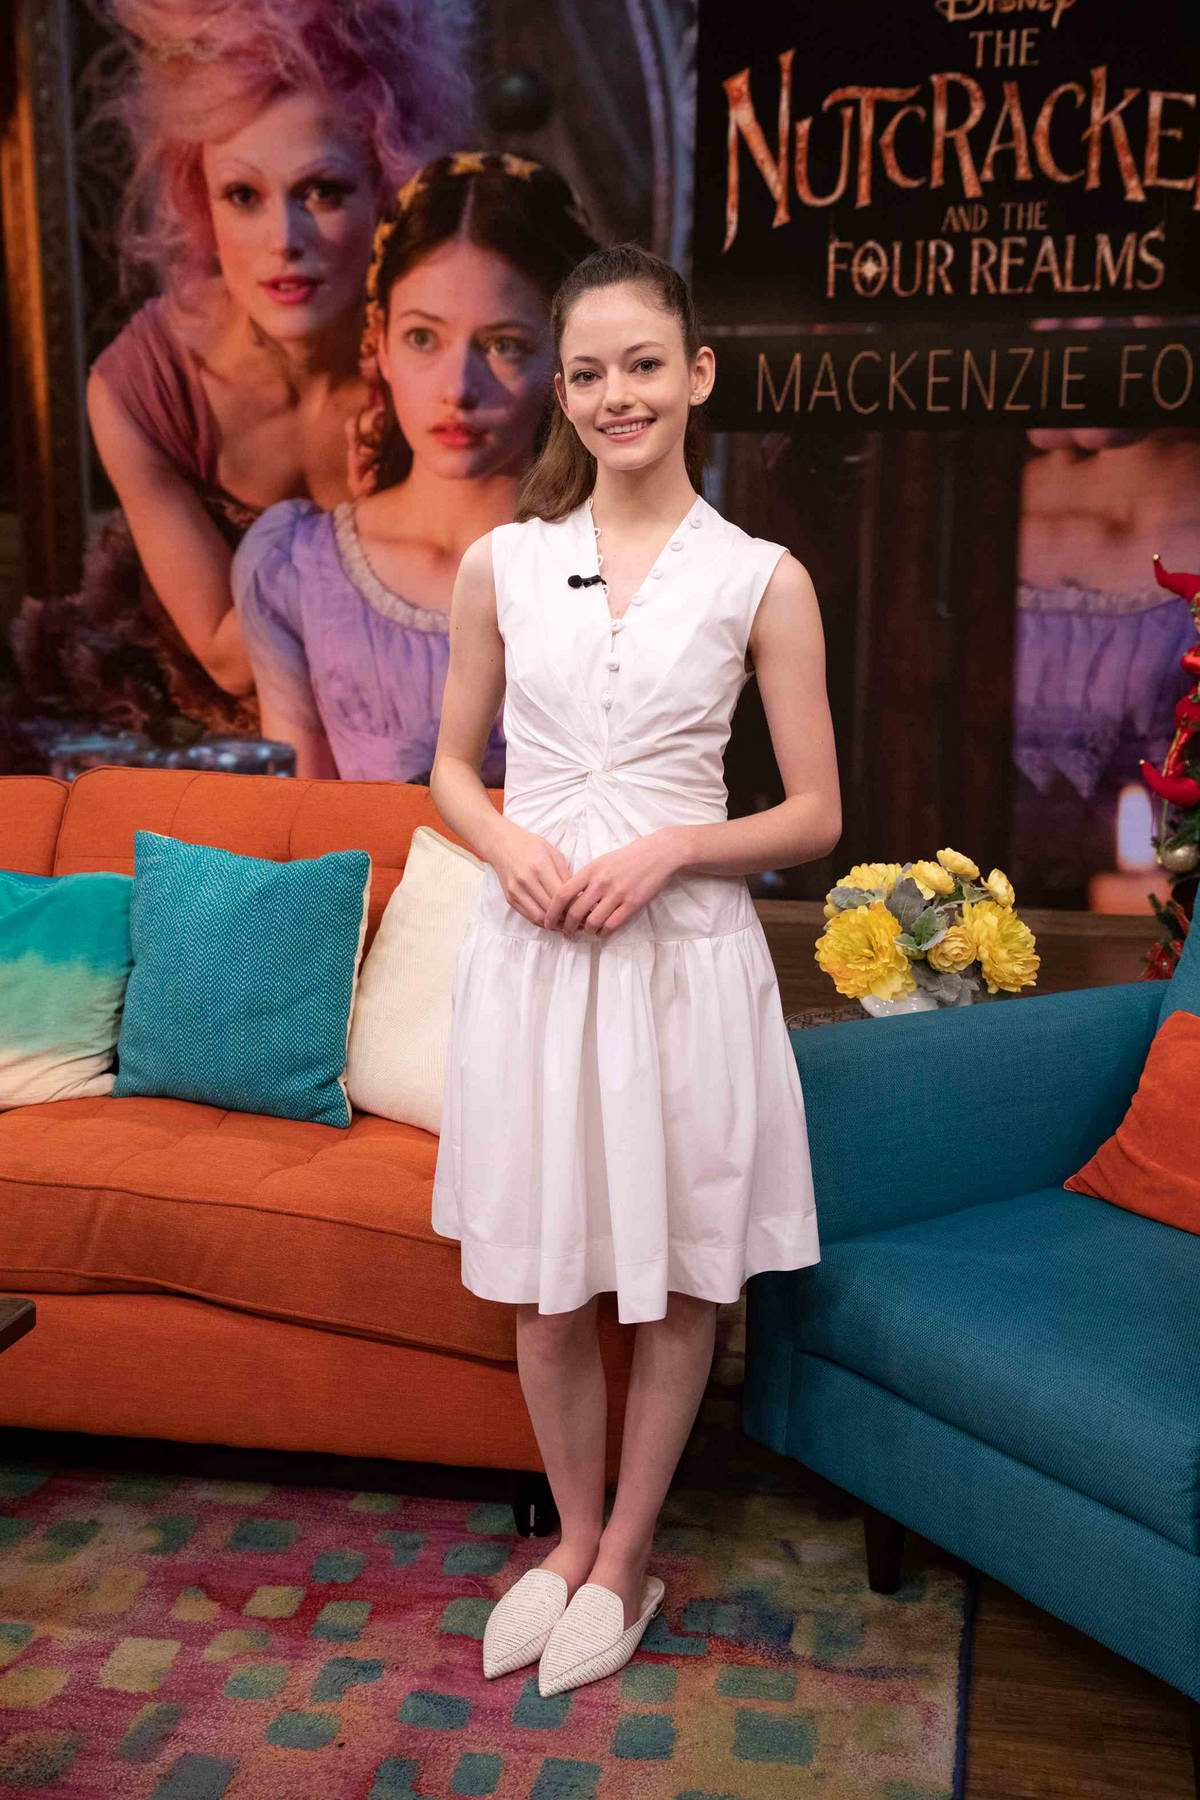 Mackenzie Foy promotes her upcoming movie 'The Nutcracker And The Four Realm' on Despierta America in Miami, Florida